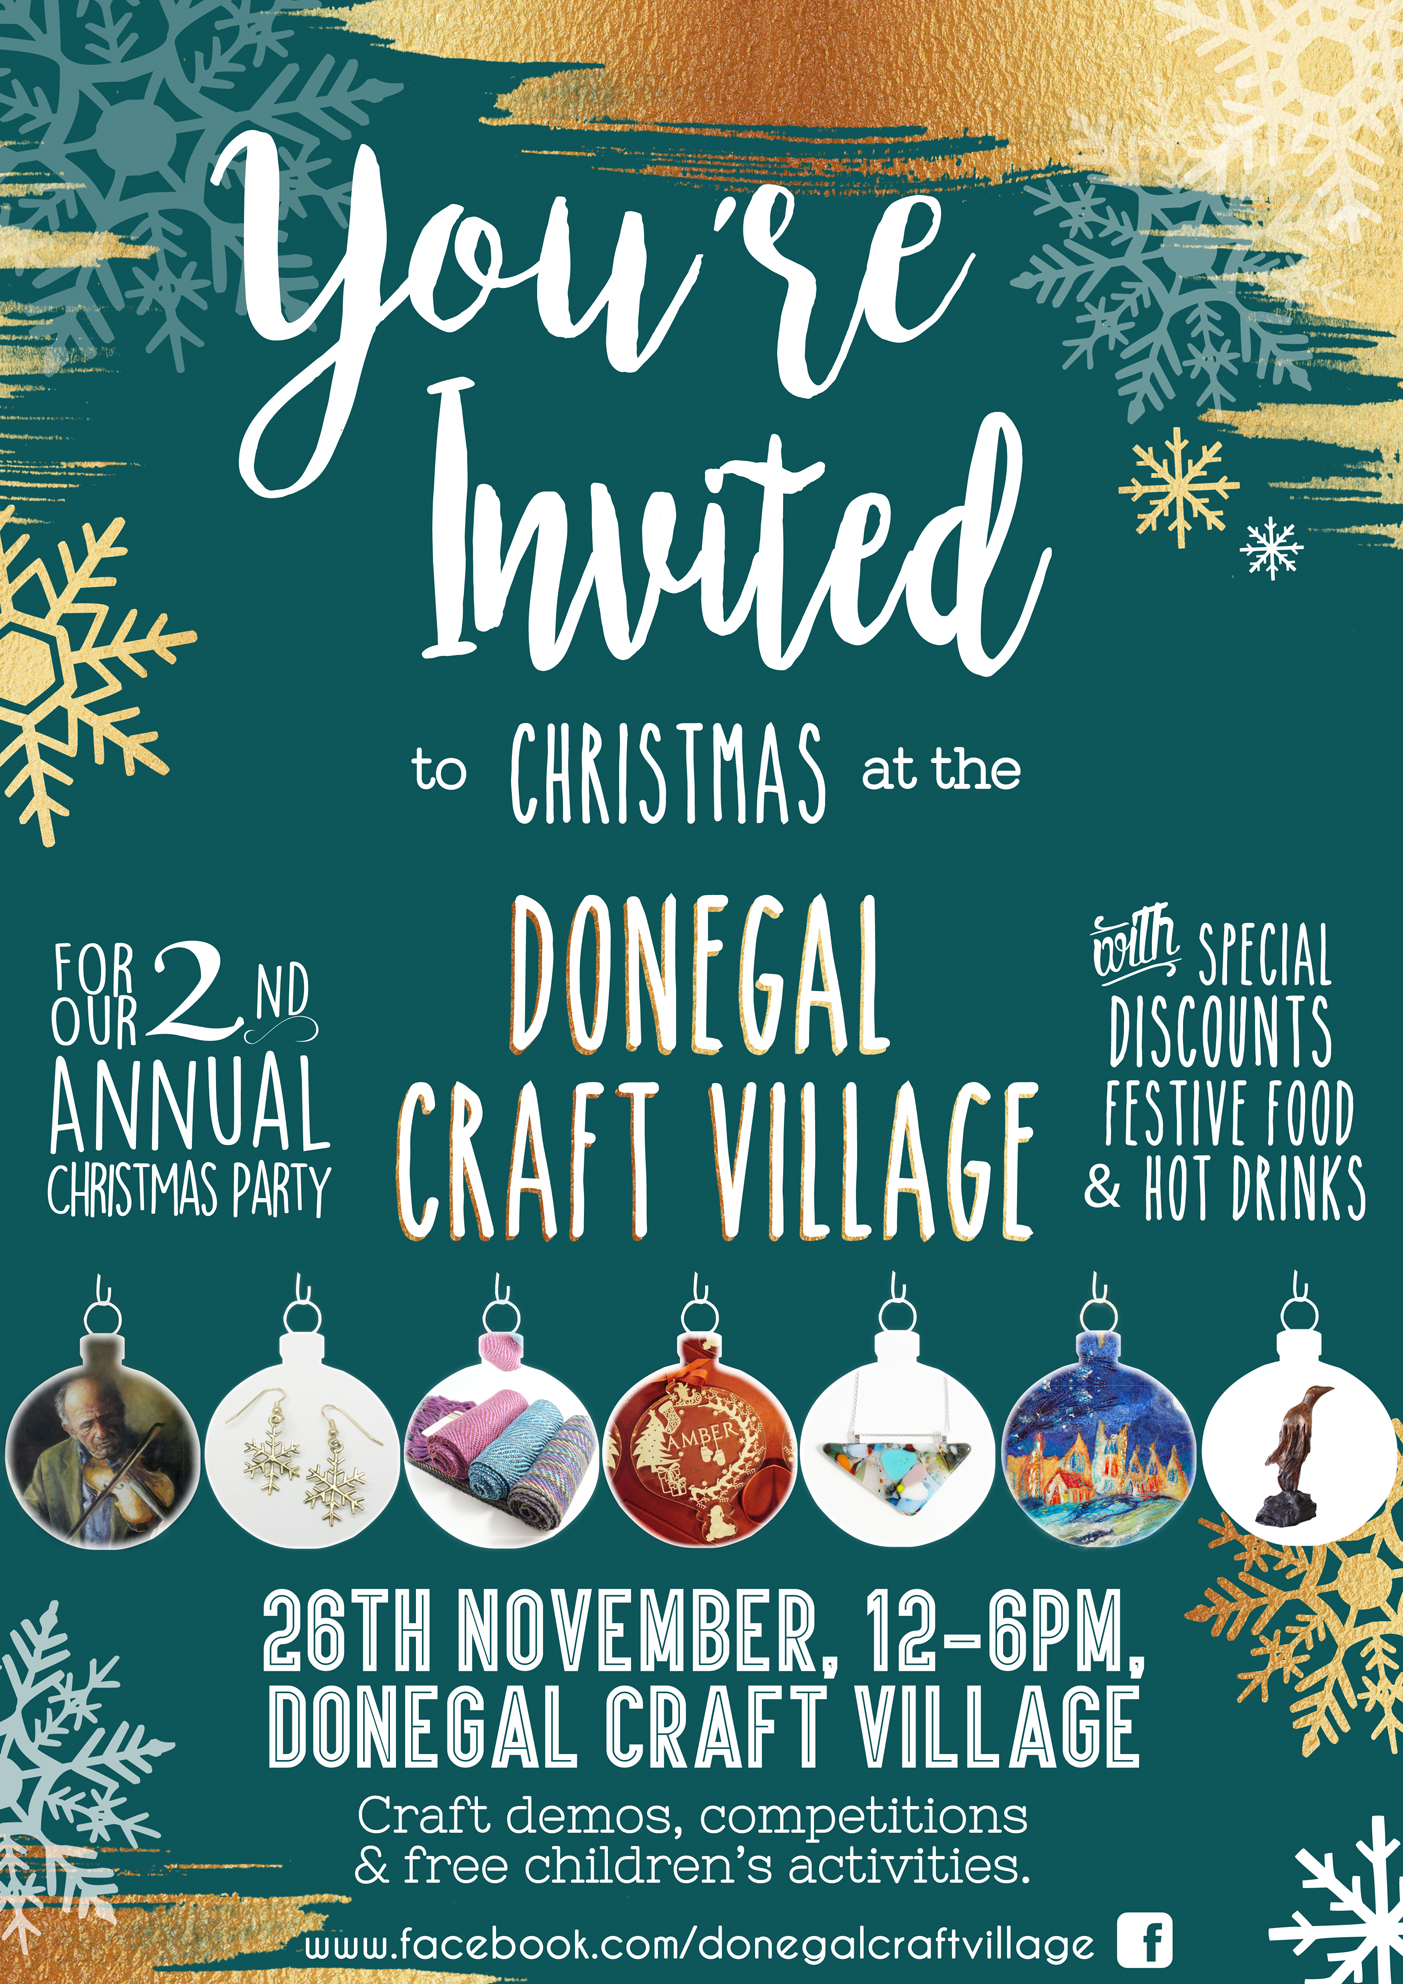 Christmas Craft Village   Donegal Gathering   Festivals & Events in the North West